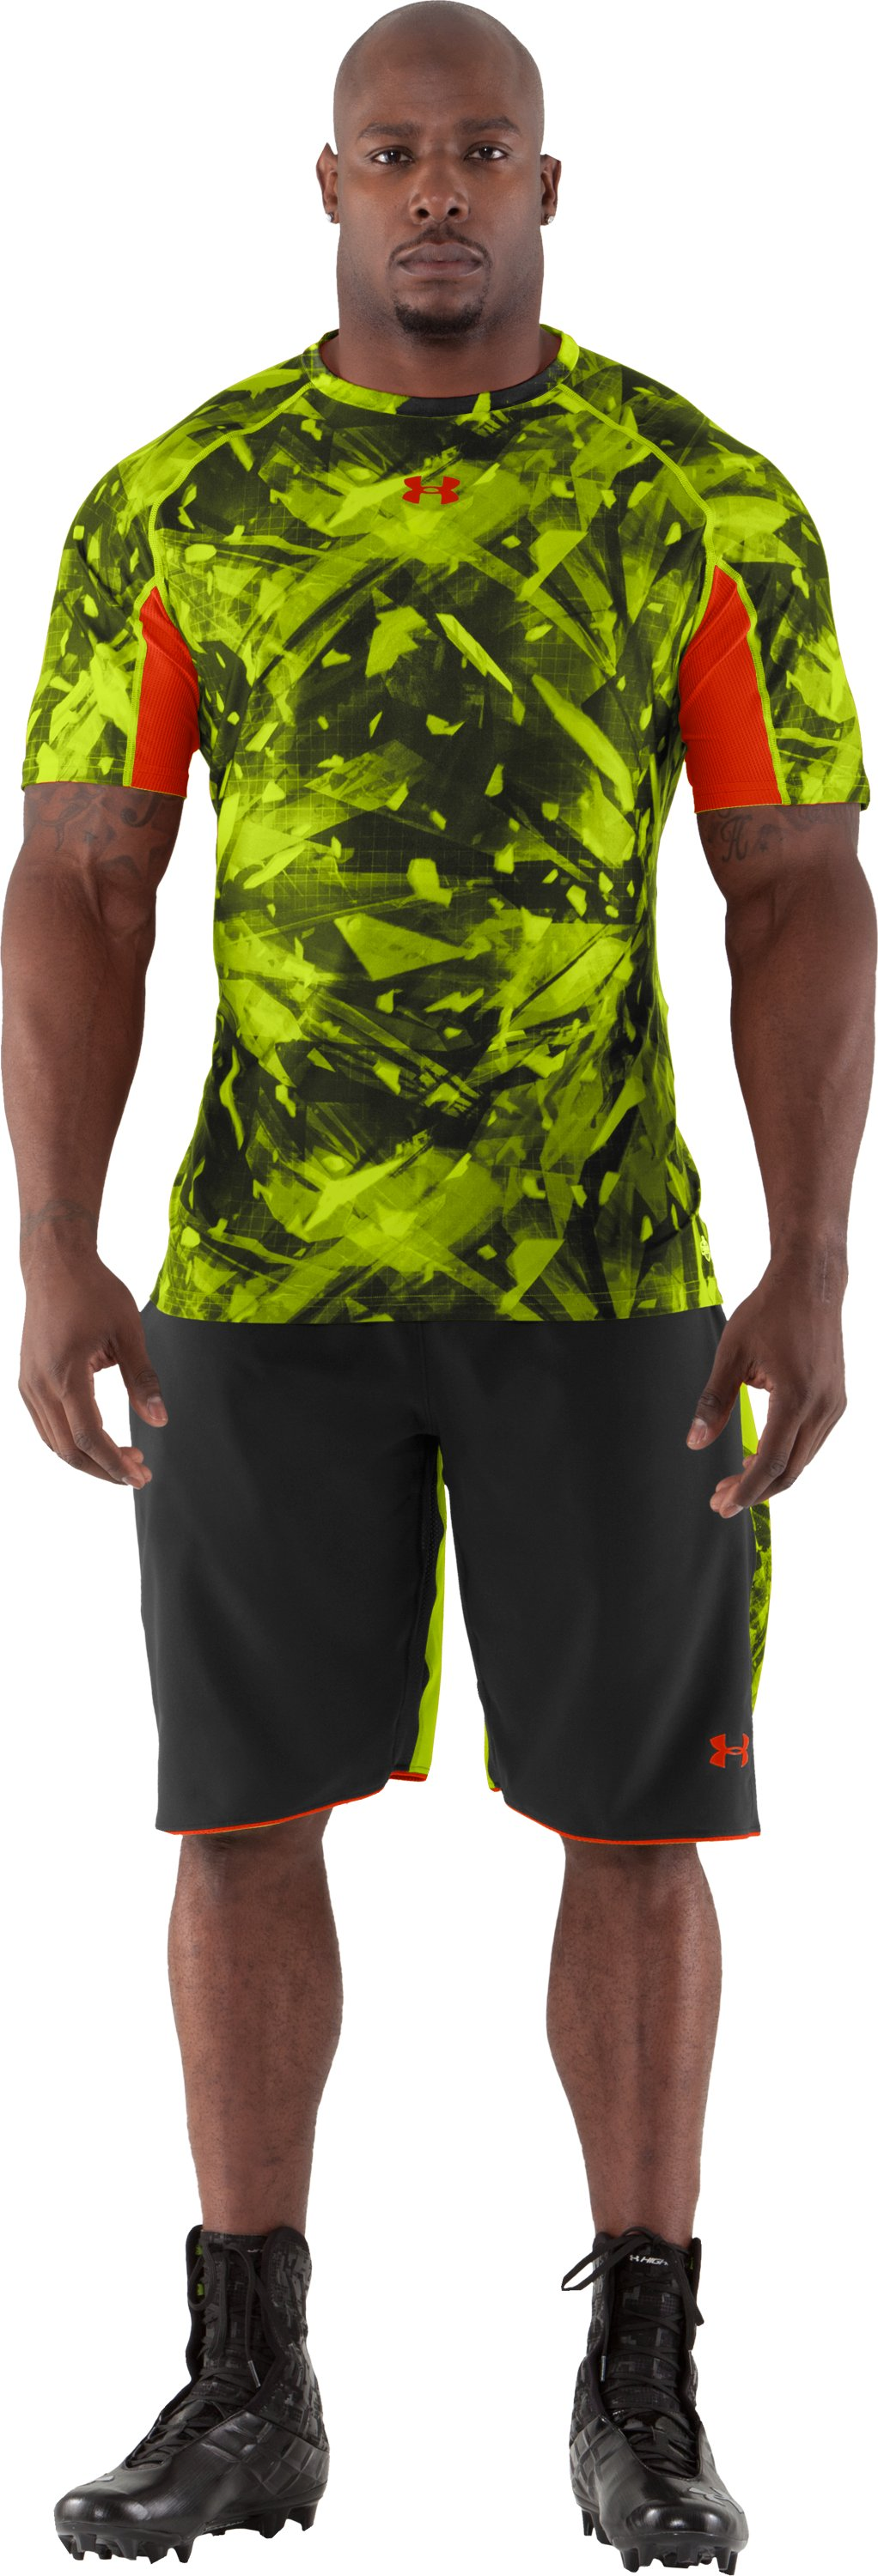 Men's NFL Combine Authentic Fitted Short Sleeve, Velocity